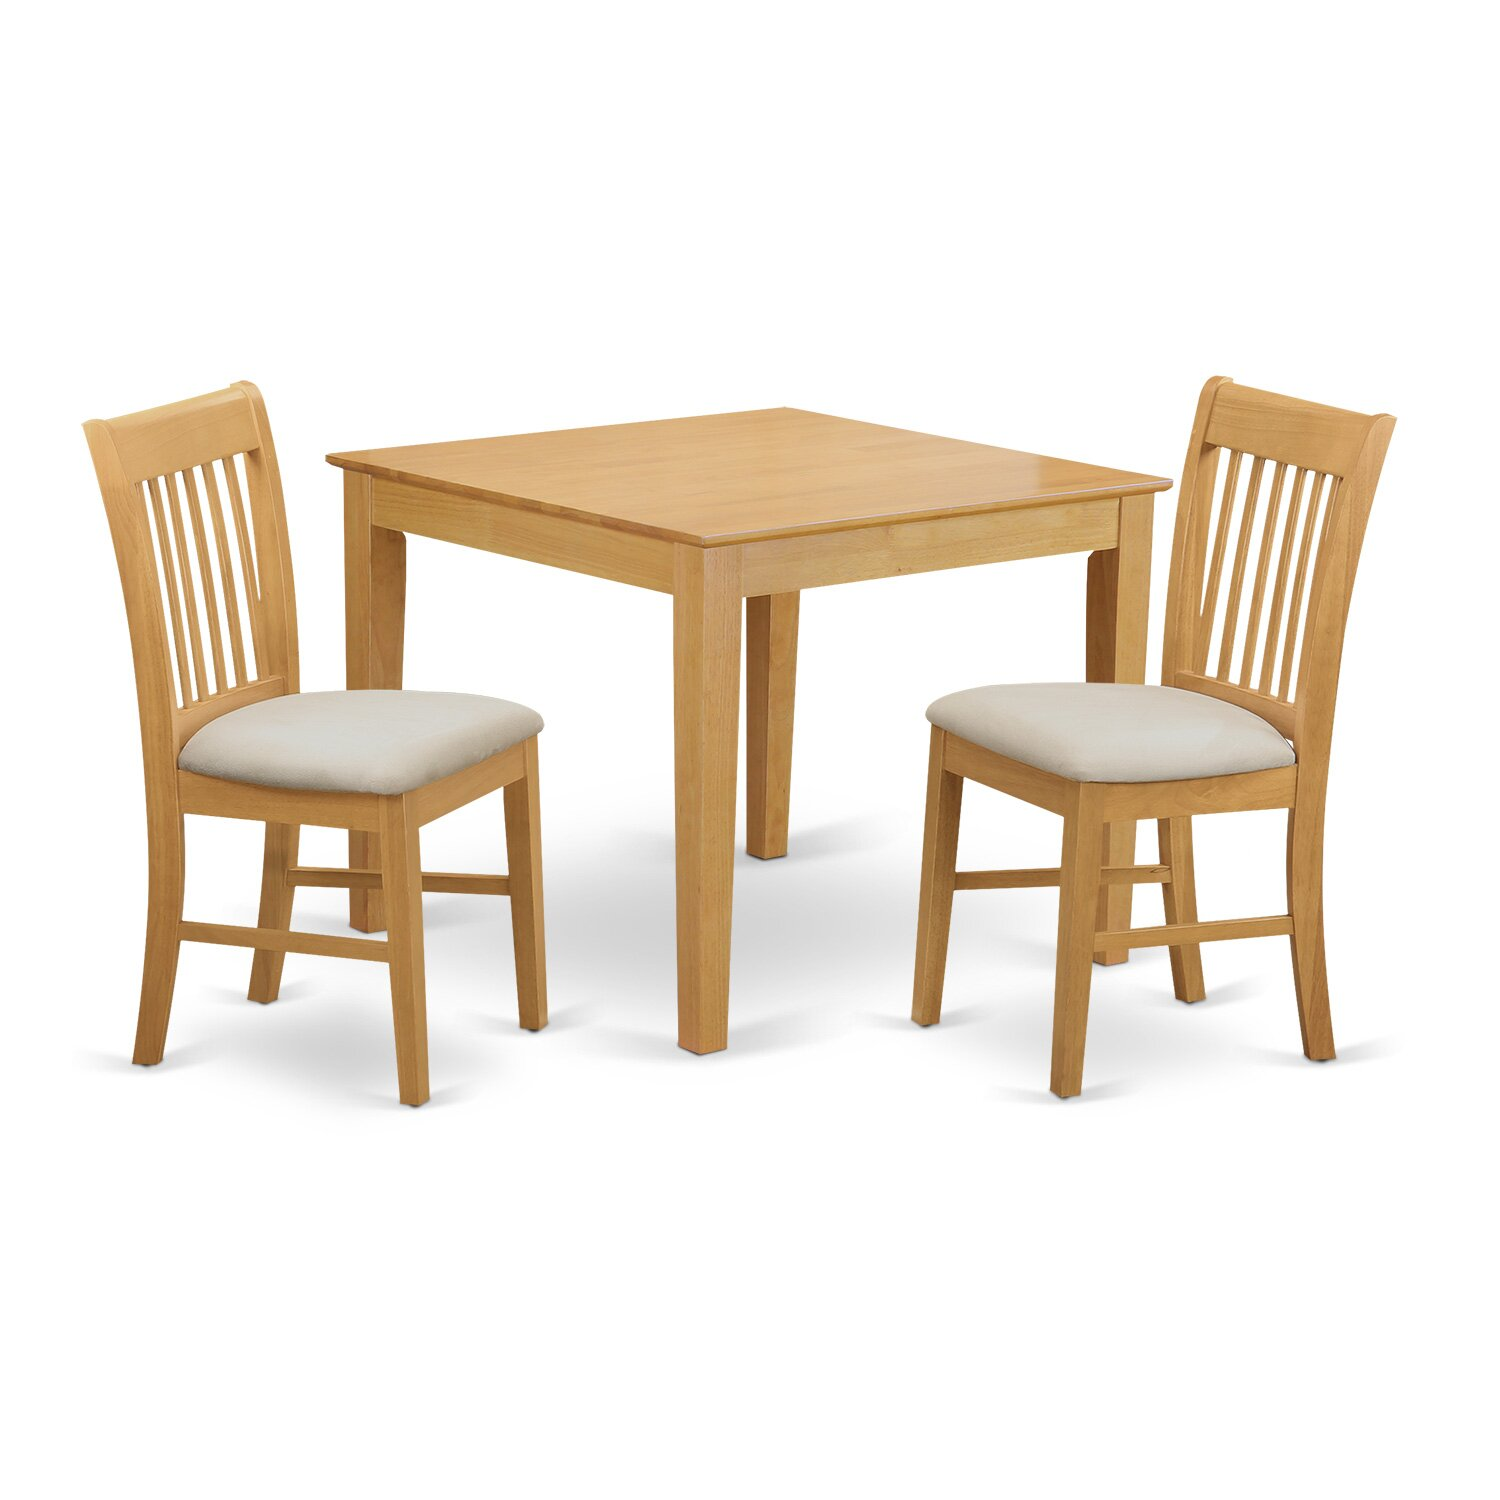 East West Oxford 3 Piece Dining Set Reviews Wayfair